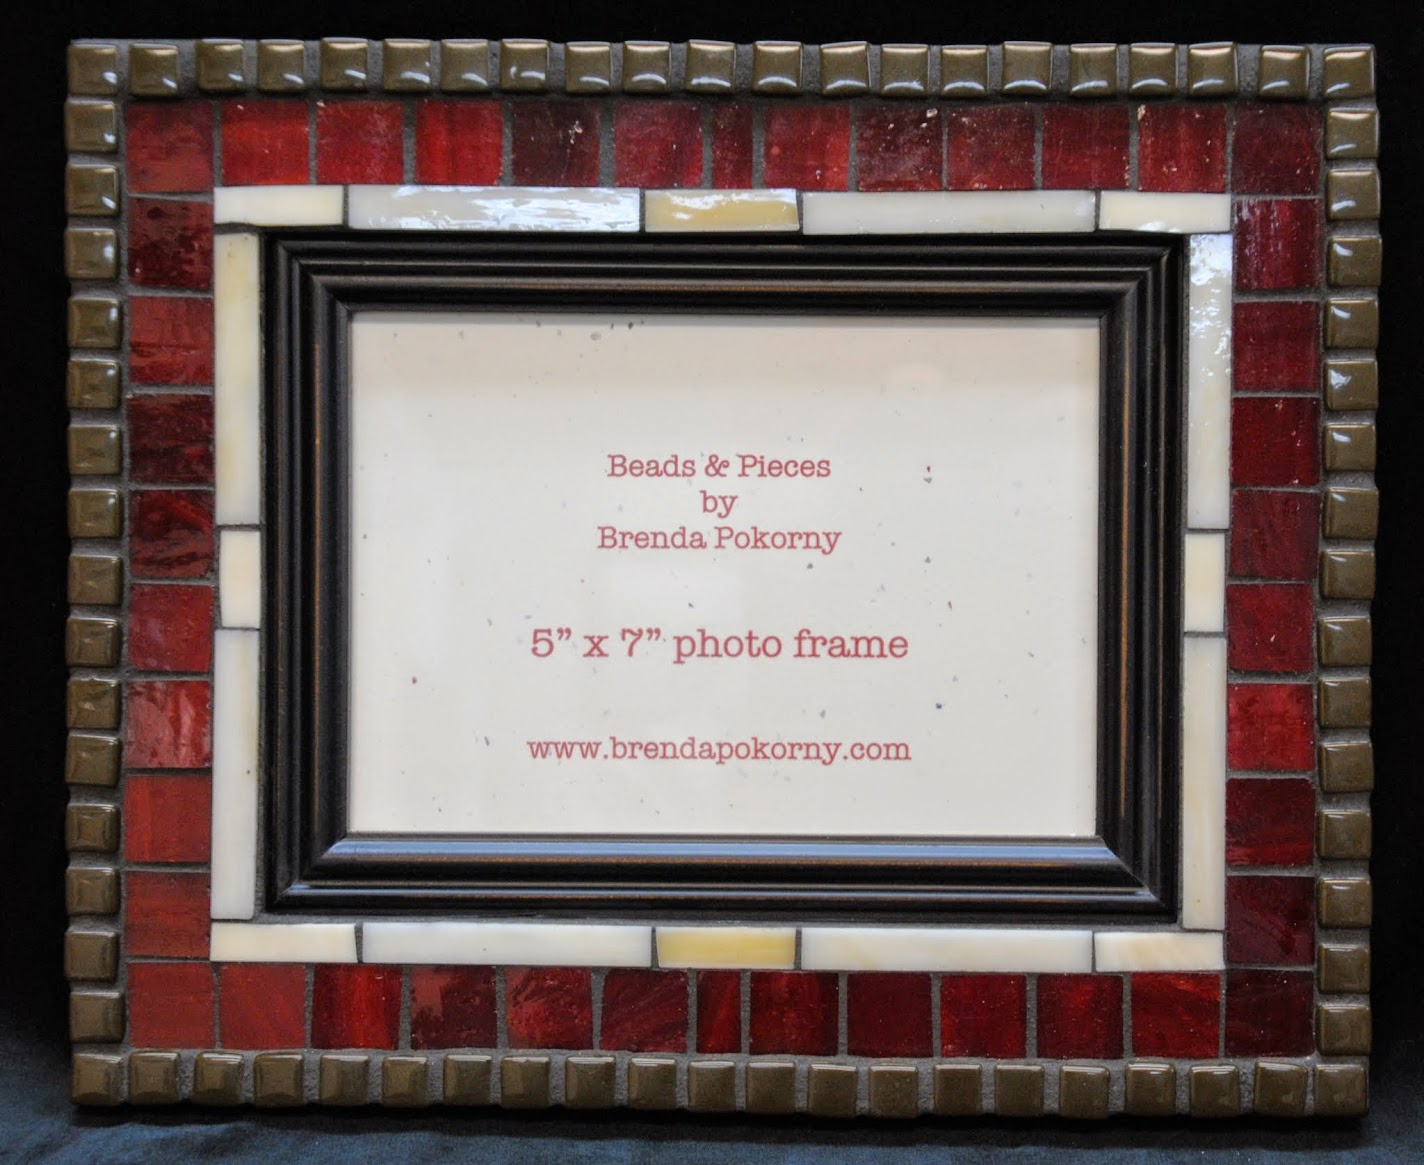 Mosaic Photo Frames in Red Tones